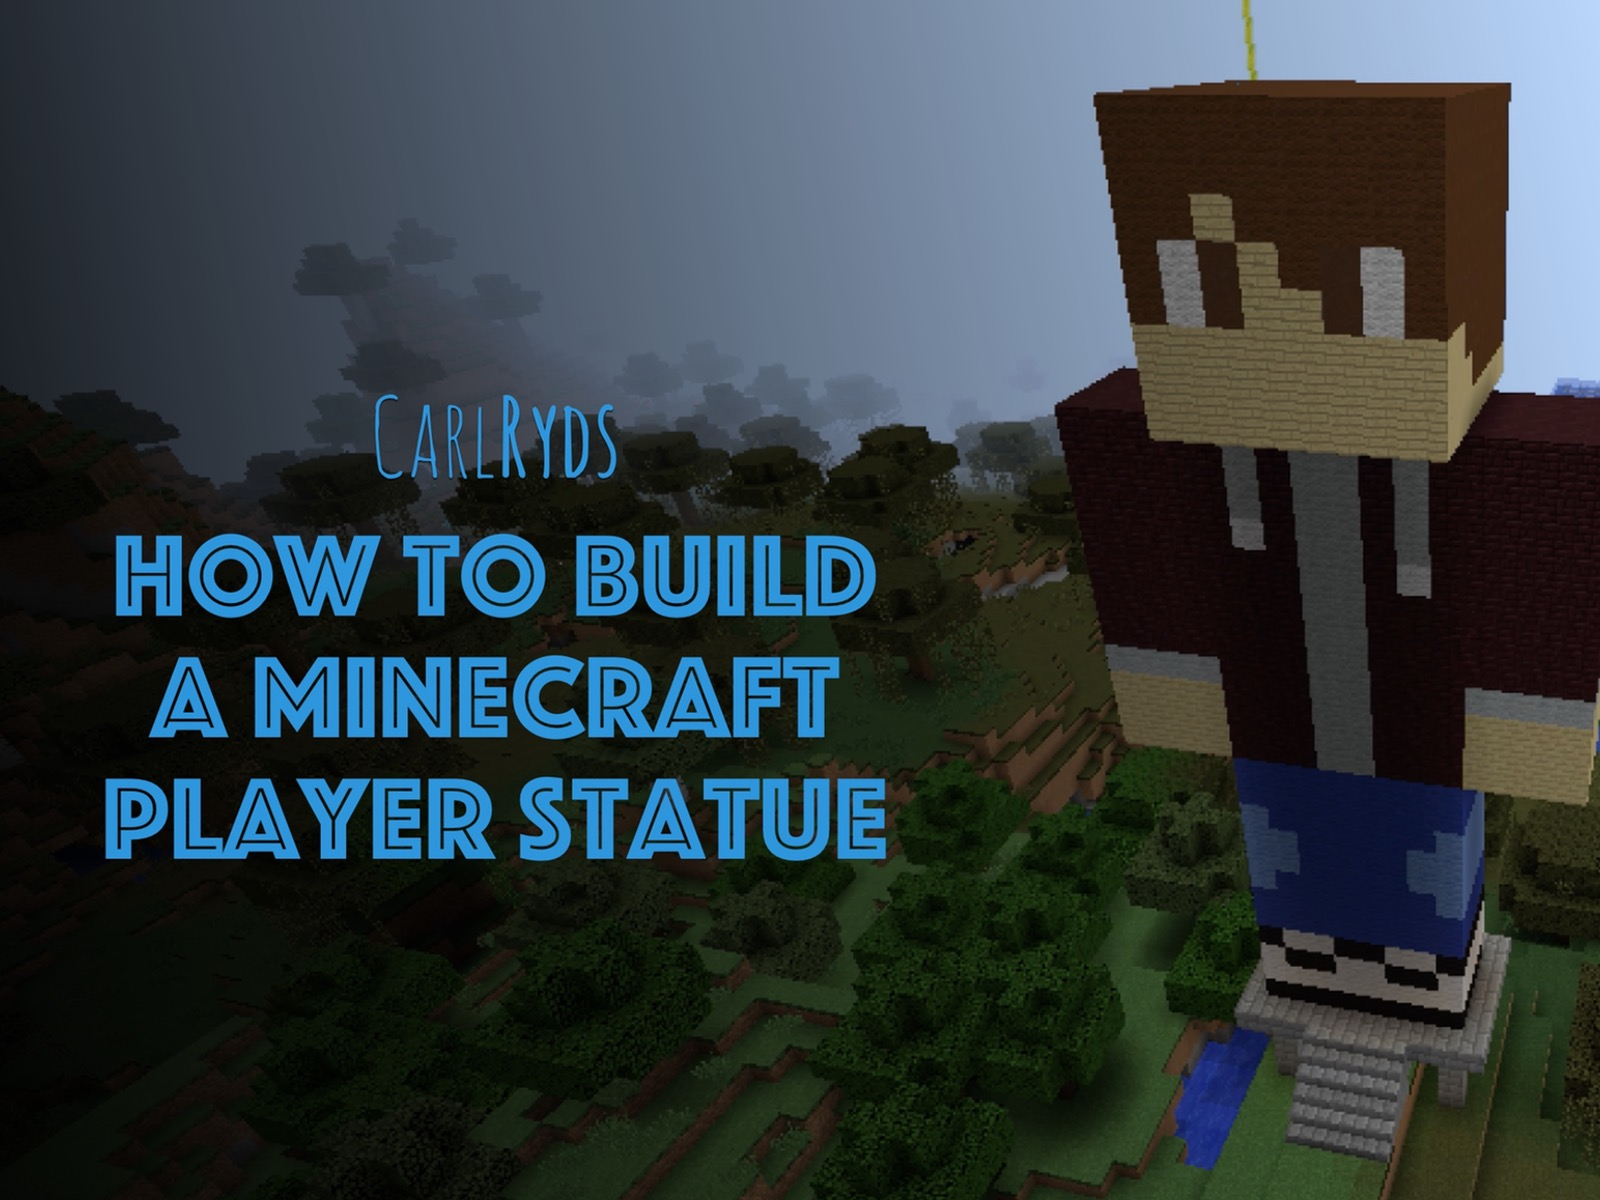 How To Build a Minecraft Player Statue